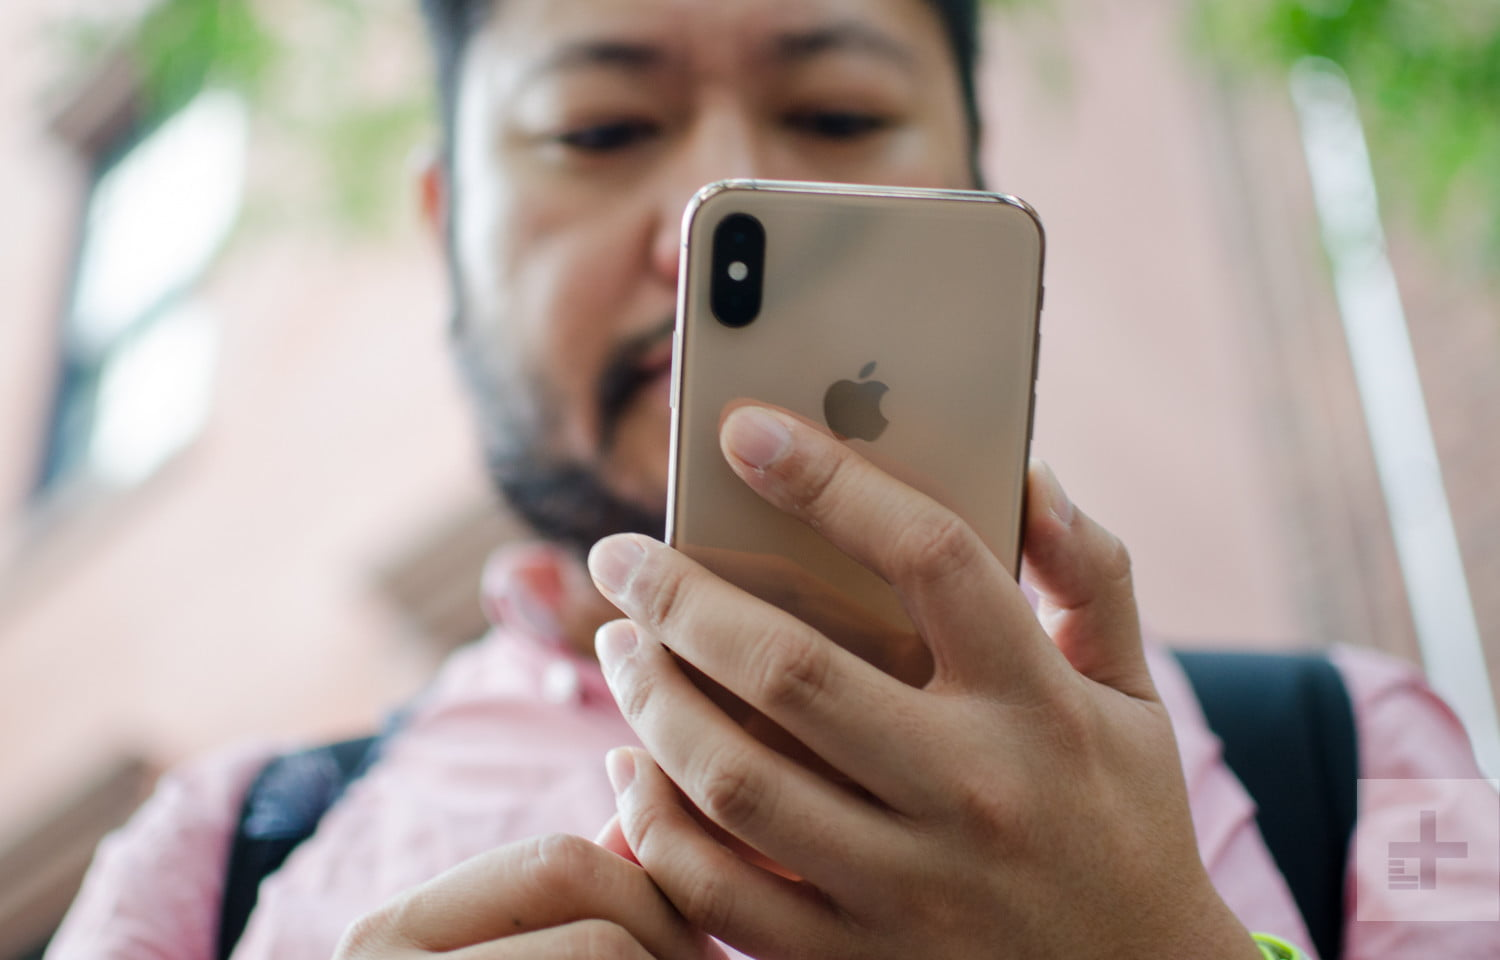 iOS 13's FaceTime bug gives access to your iPhone contacts without permission